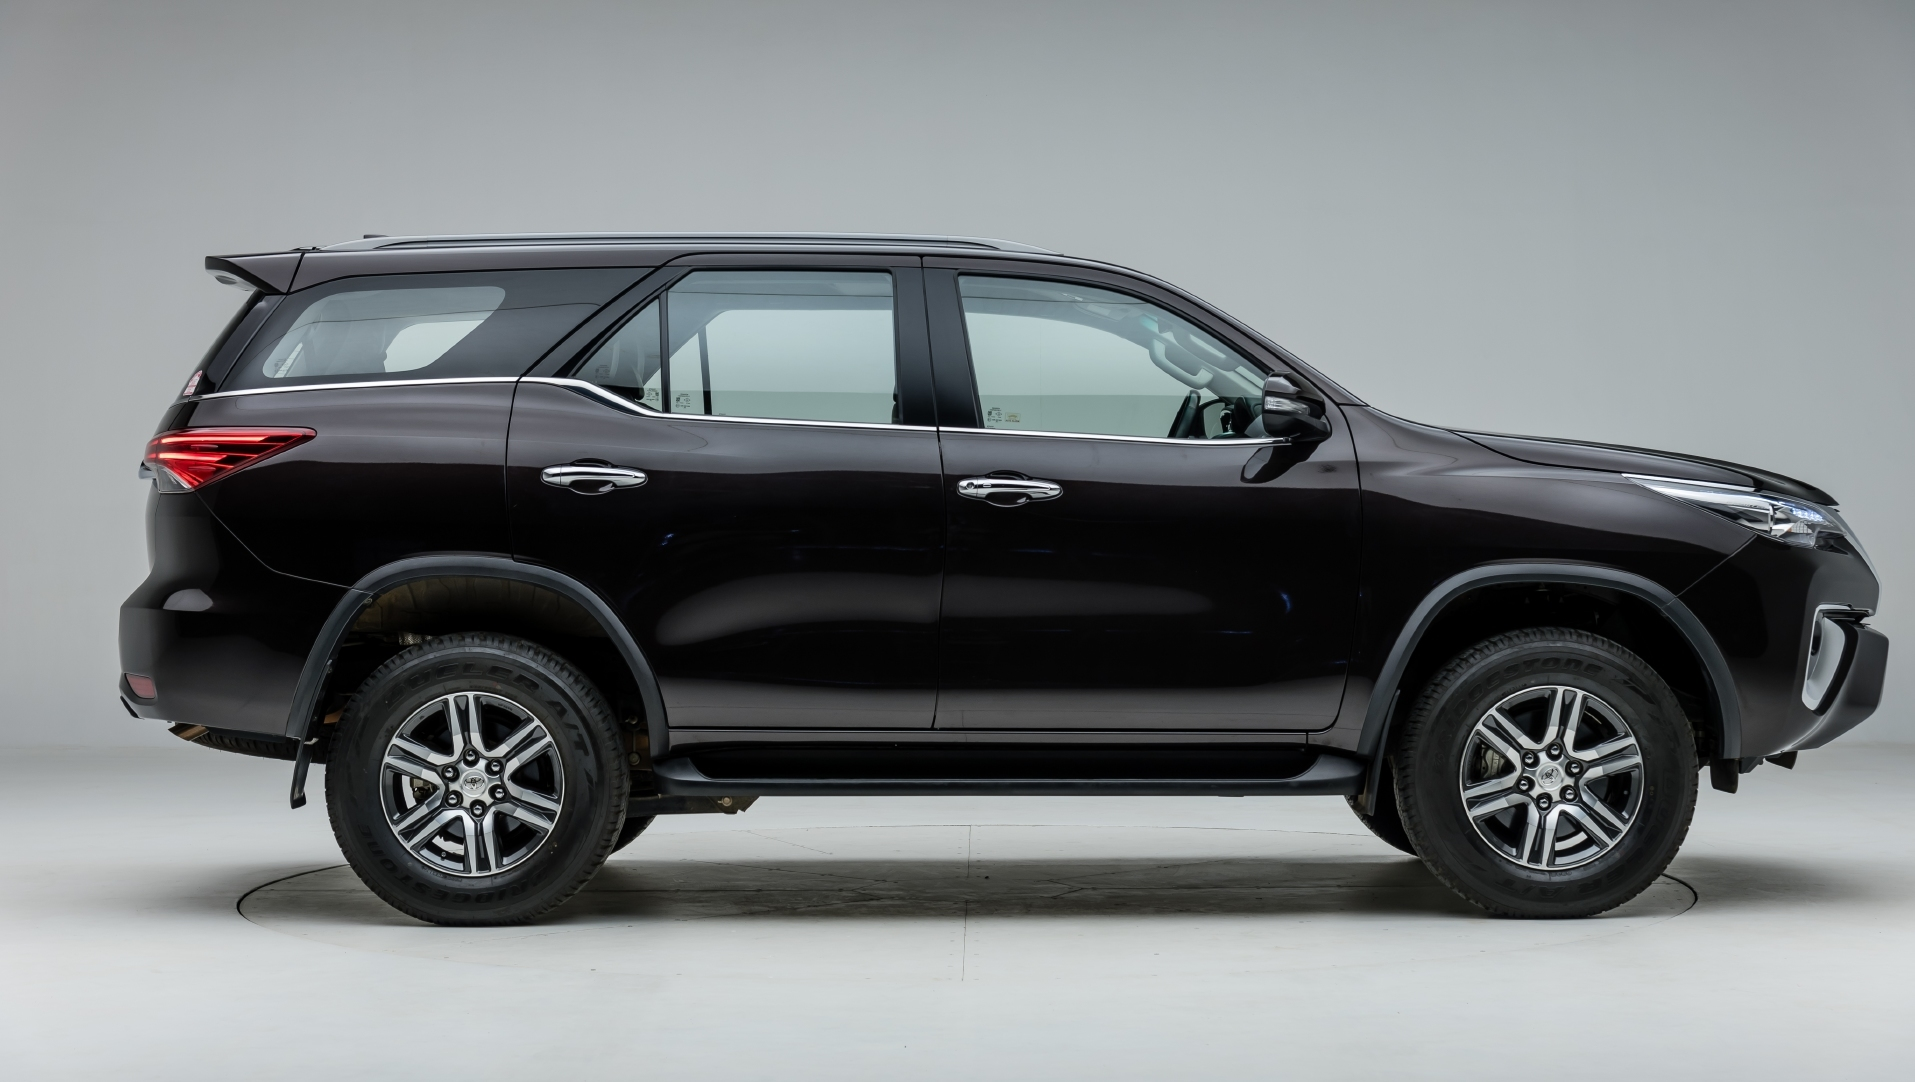 Toyota Fortuner Side View Wallpaper Backgrounds 1915x1082